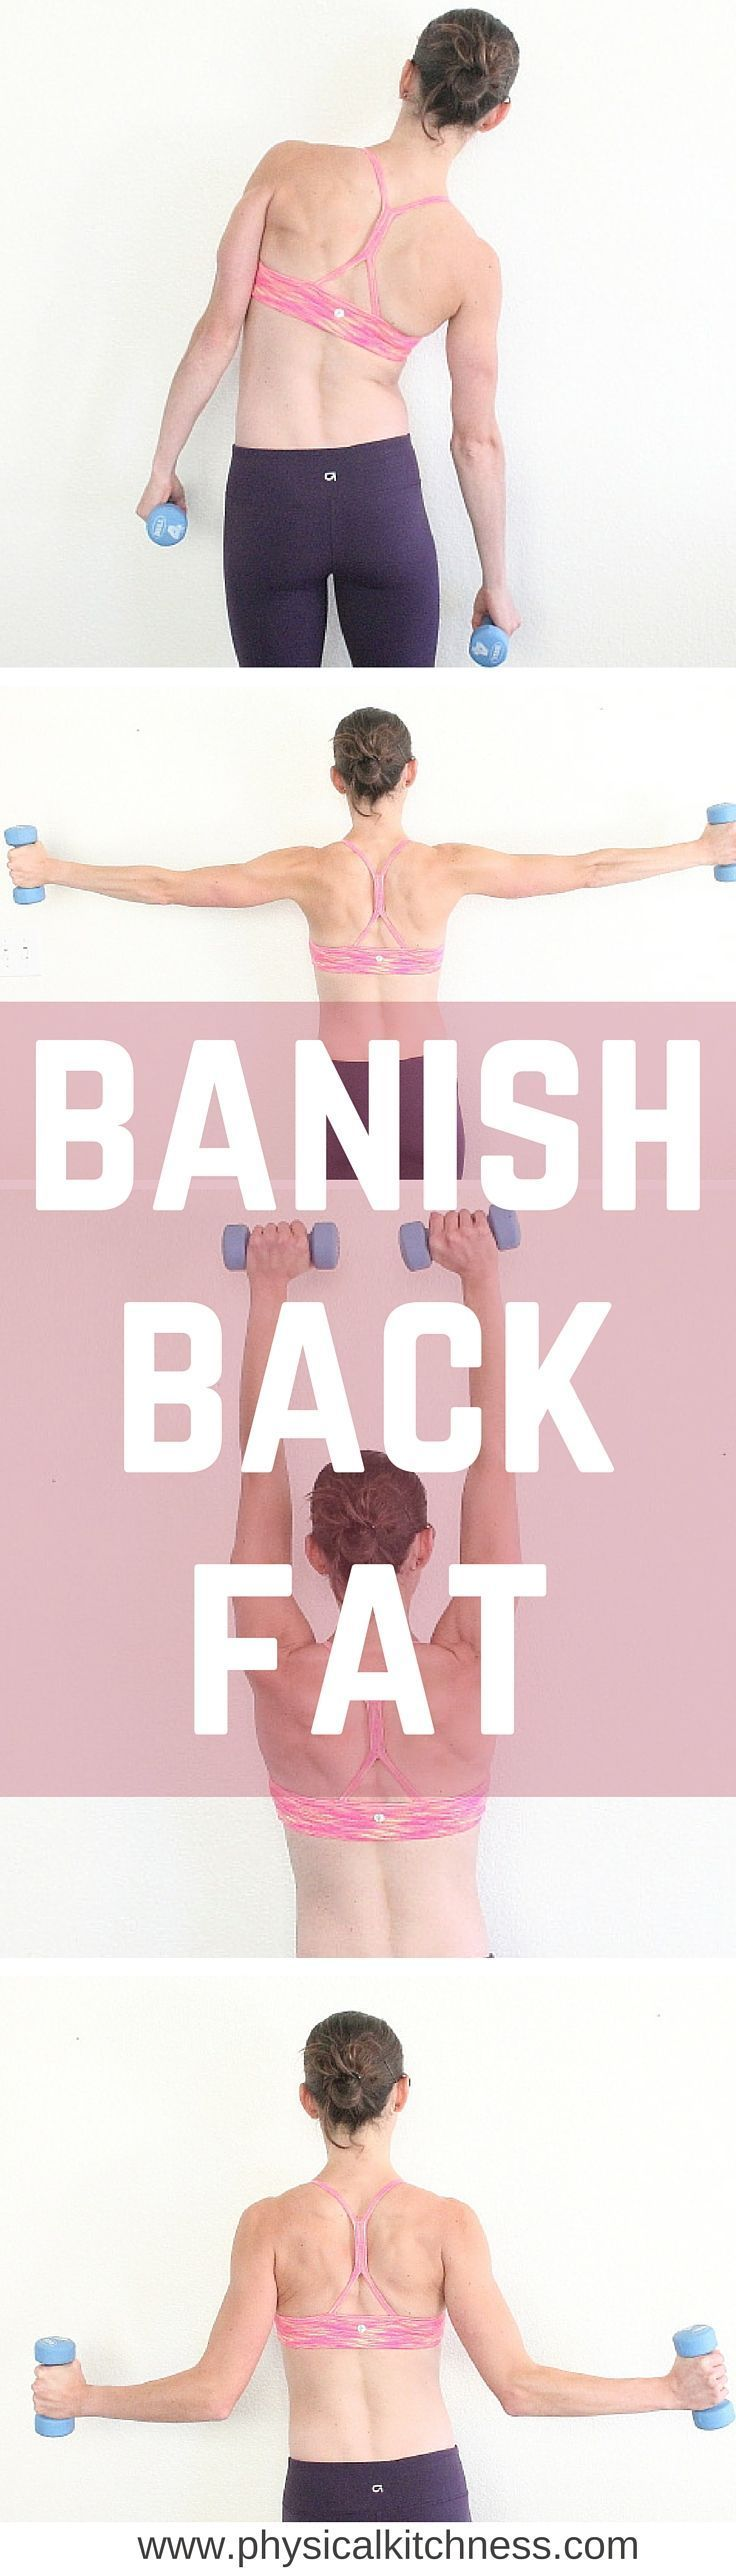 An AMAZING workout to sculpt all those sexy back muscles! Banish the back fat HERE!: